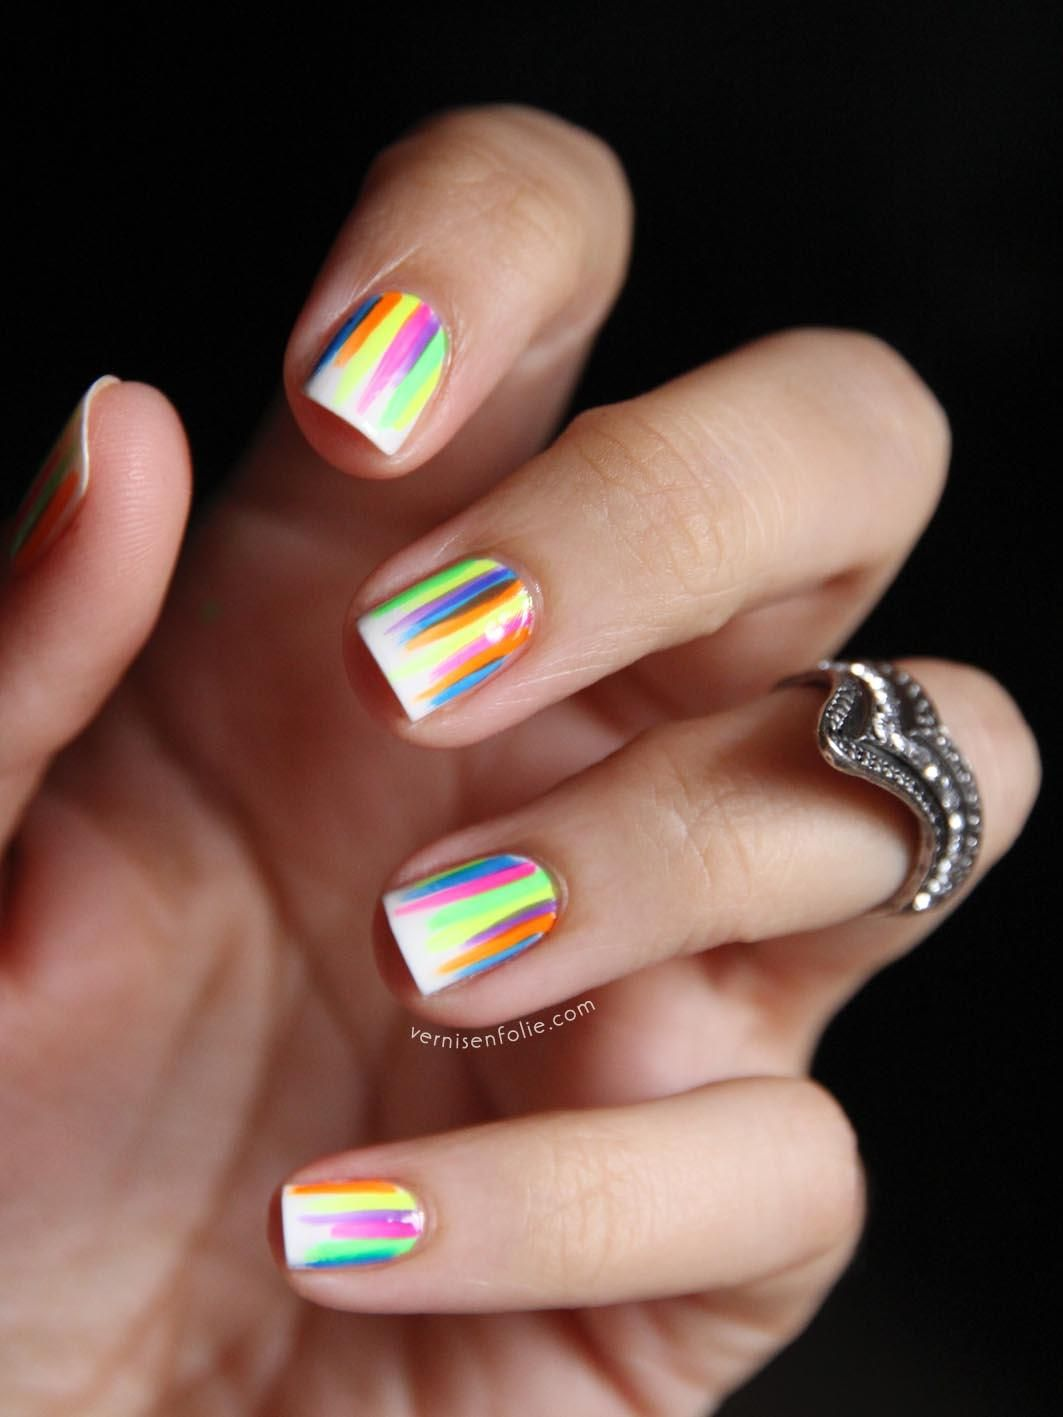 Do it yourself nails designs nail designs pinterest orange do it yourself nails designs solutioingenieria Images